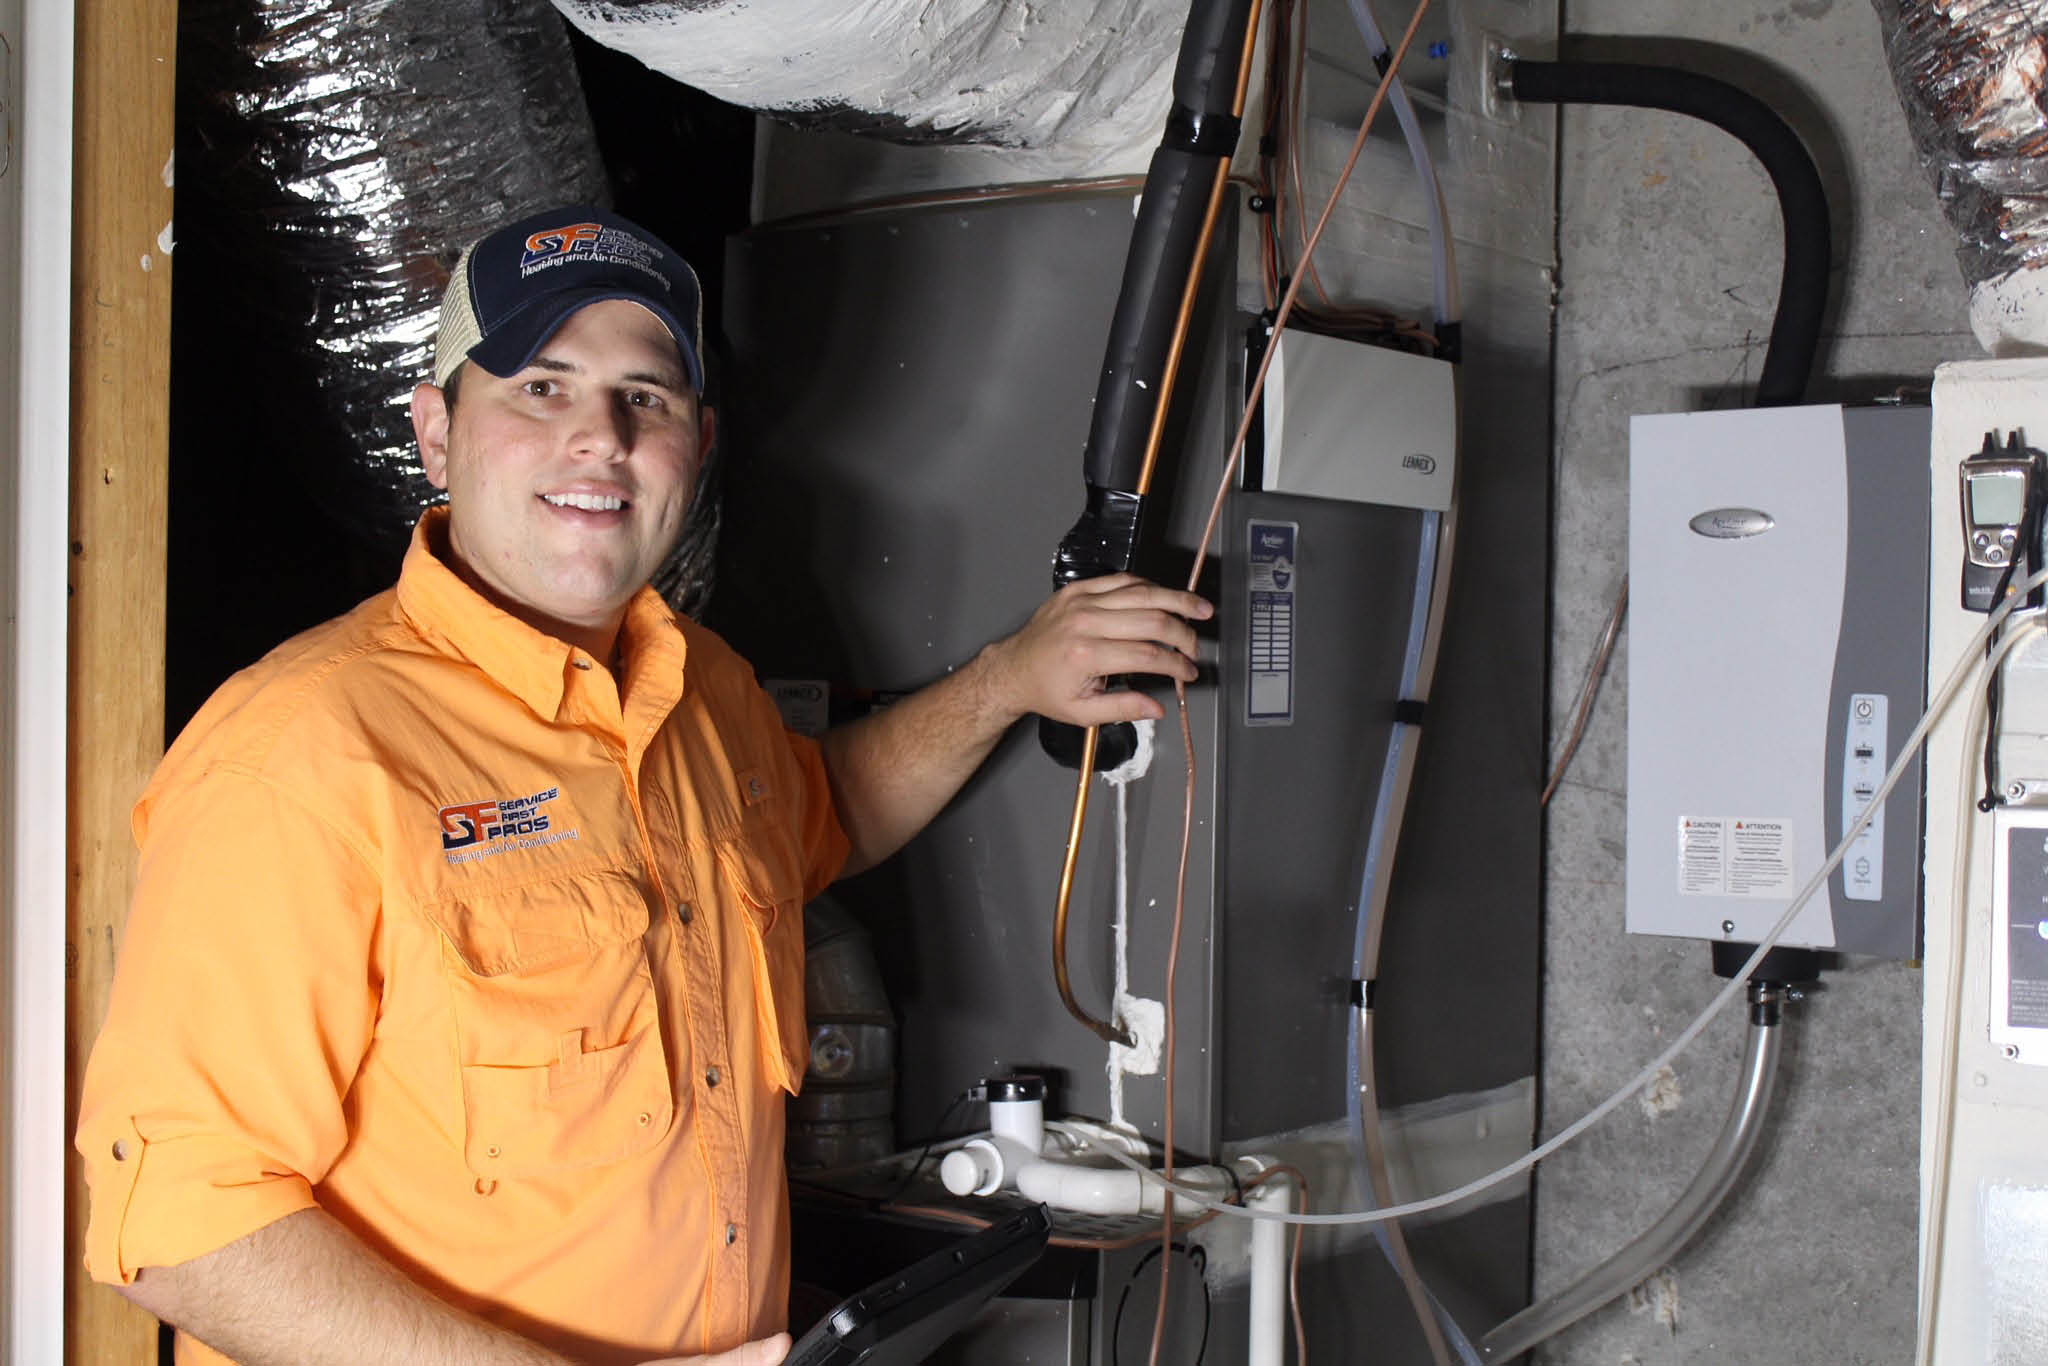 Service Pro technicians can repair or replace your heating or cooling system